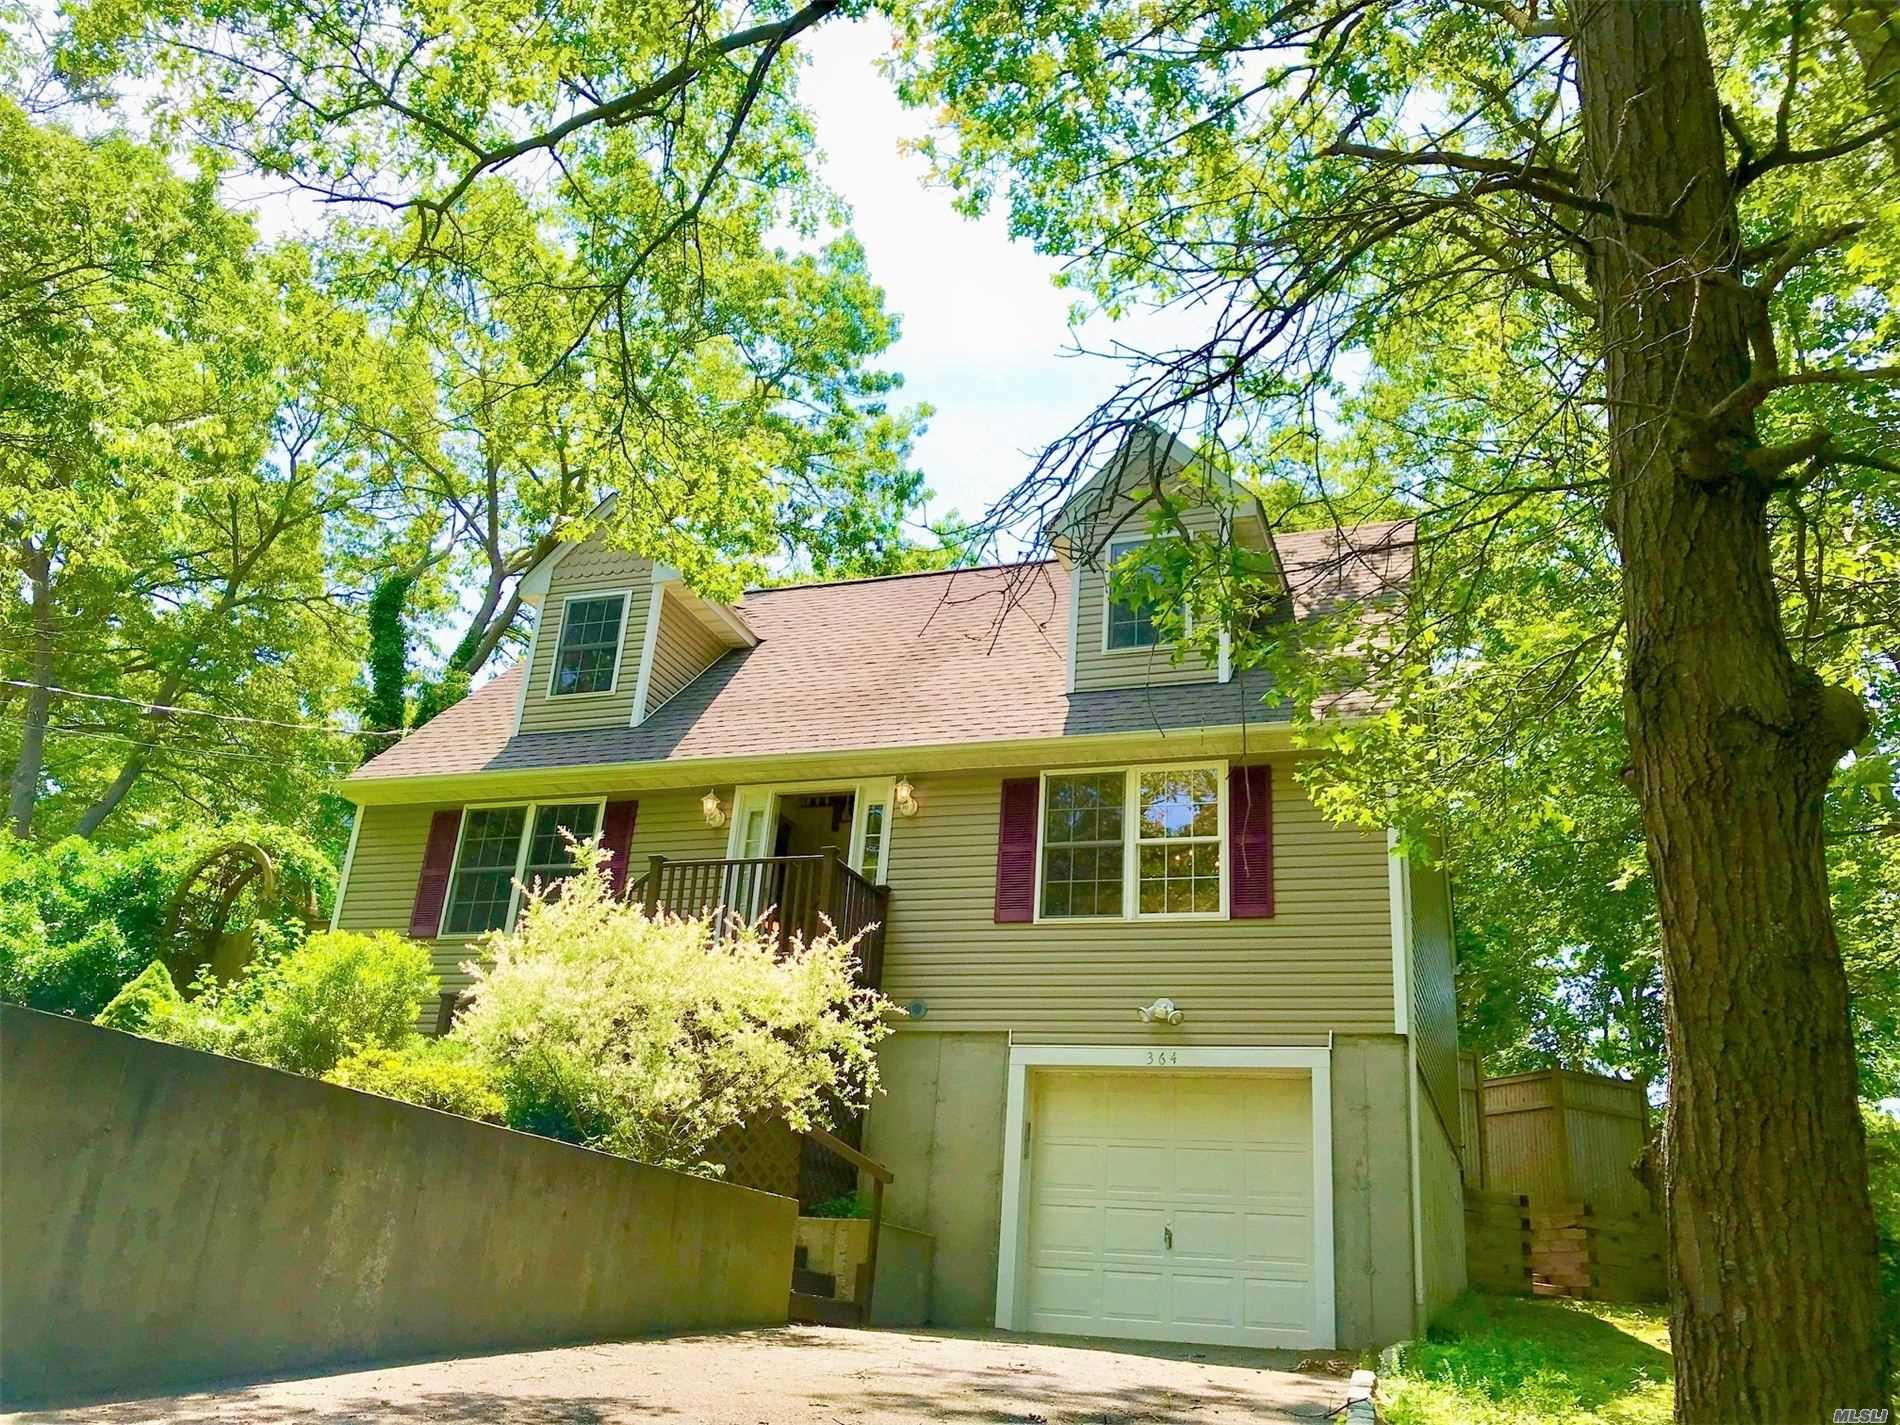 Diamond Expanded Cape W/ Open Floor Plan, 3 Bed, 2 Full Bath, I Car Garage,  Large & Updated Eat-In Kitchen W/ Granite Counter Tops W/ New Stainless-Steel Appliances, Formal Dr, Hi-Hats & Oak Hardwood Floor Throughout, Architectural Roof. Move-In Ready Home, Updated Full Finished Basement w/ Full Bathroom, Dining Room W/Slider Door To Deck W/ Fully Fenced in Back Yard, Great Location! Near Restaurants, Shopping, Just a Short Drive To Beach & Parks, Miller Place Schools!